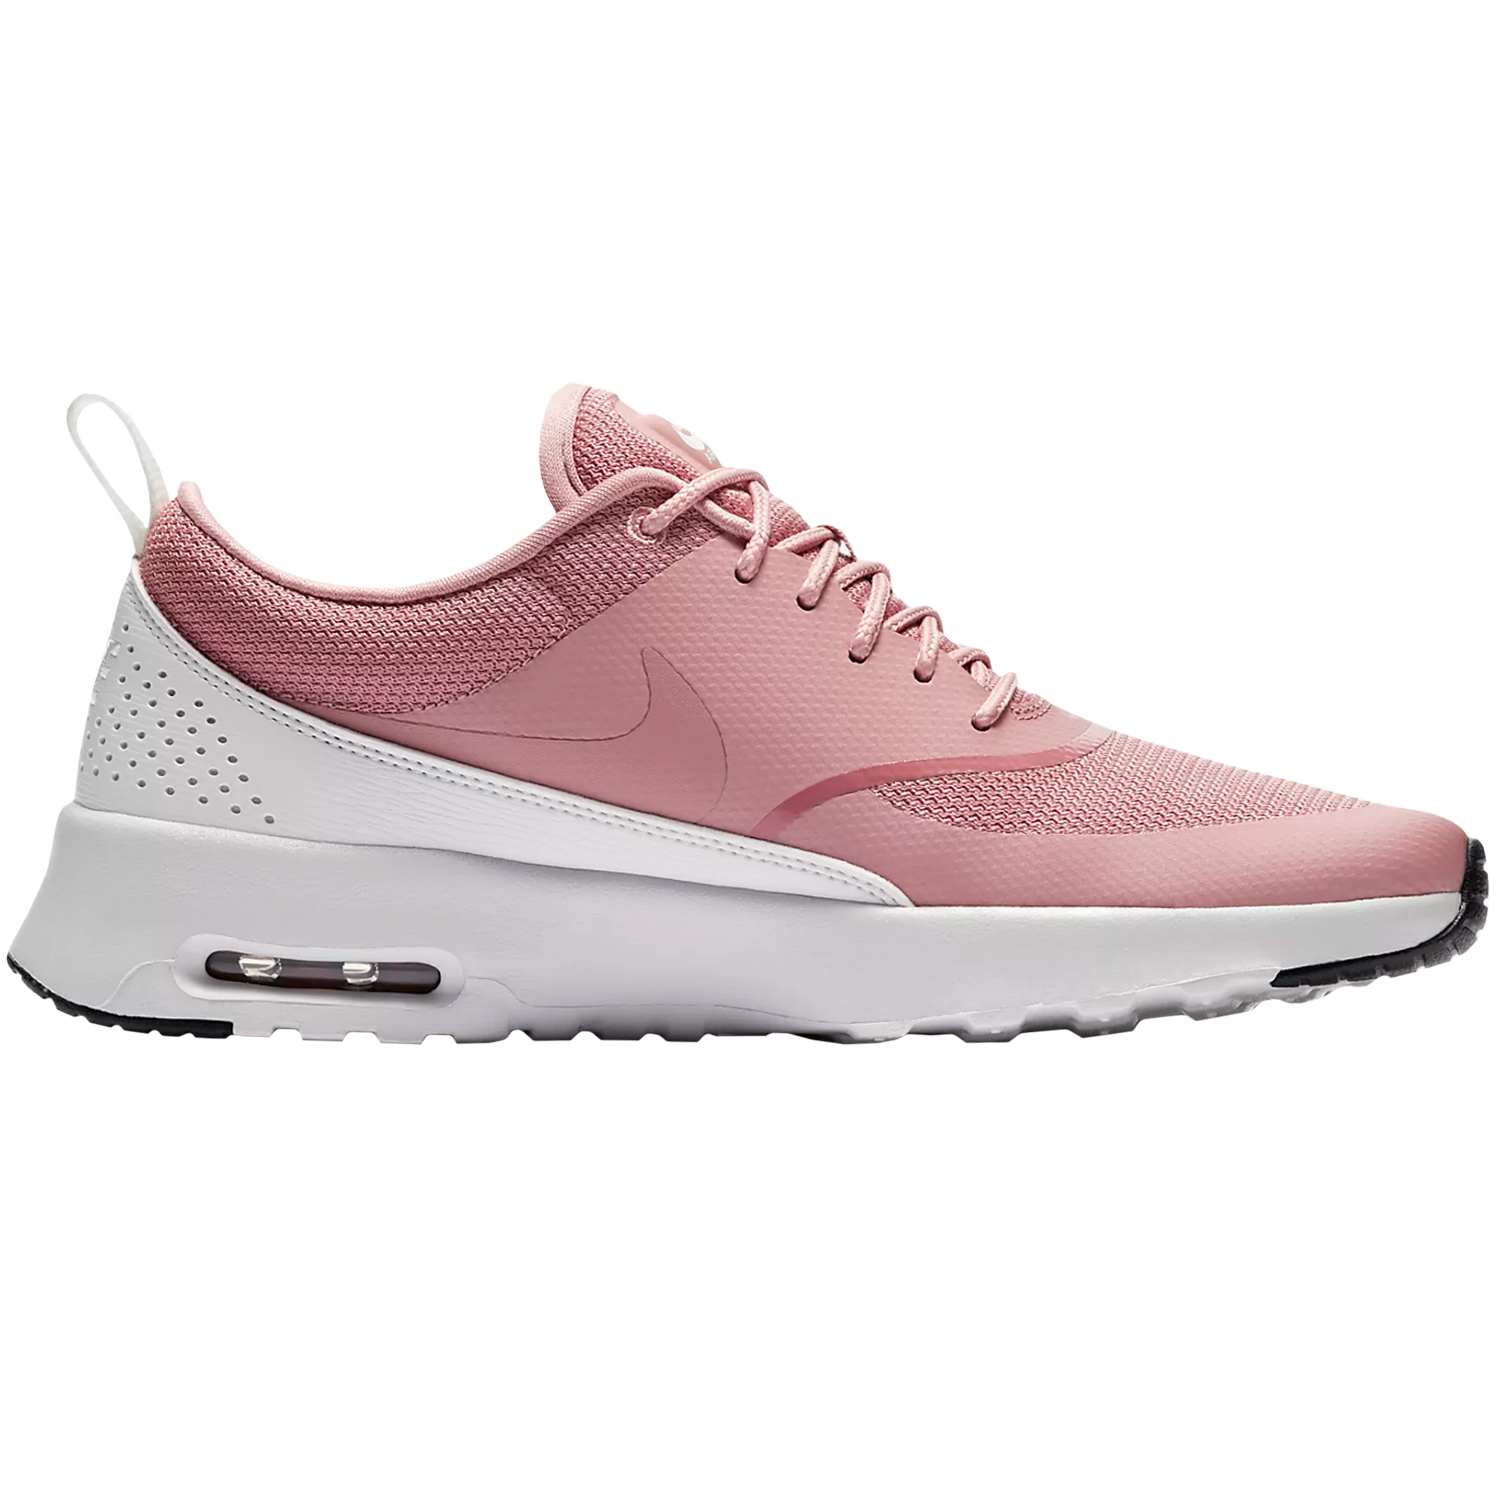 Nike Air Max Thea Damen Sneaker low pink weiß